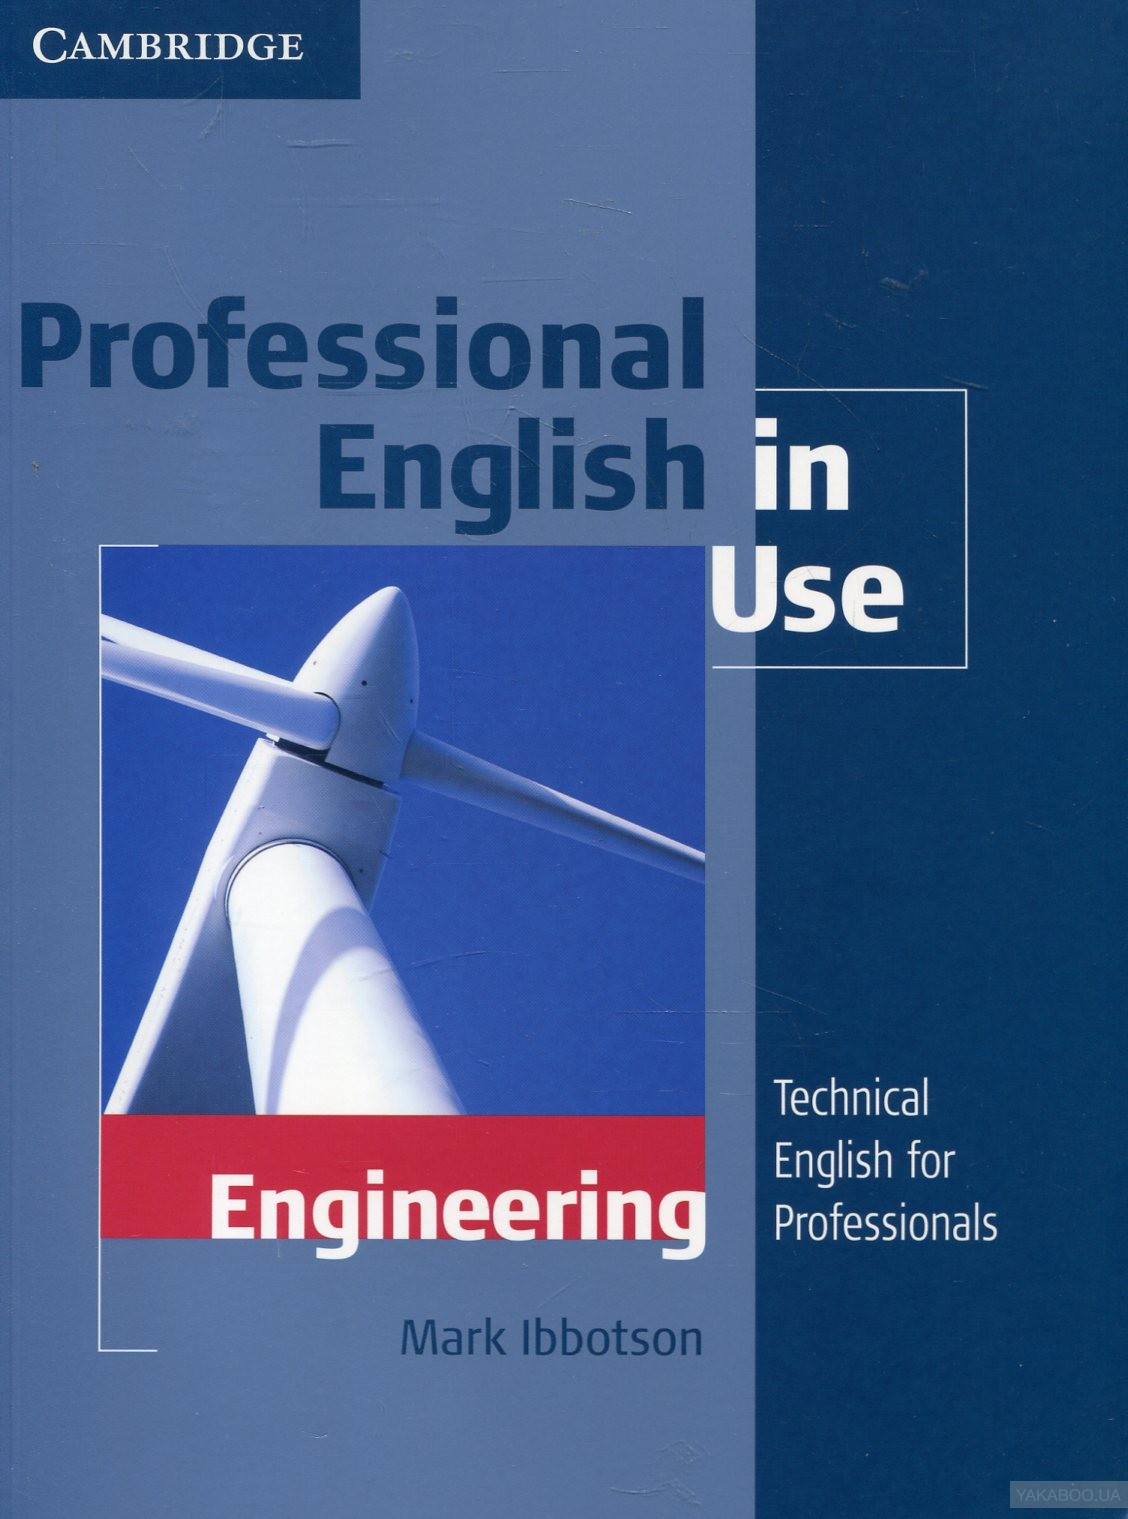 Professional English in Use. Engineering